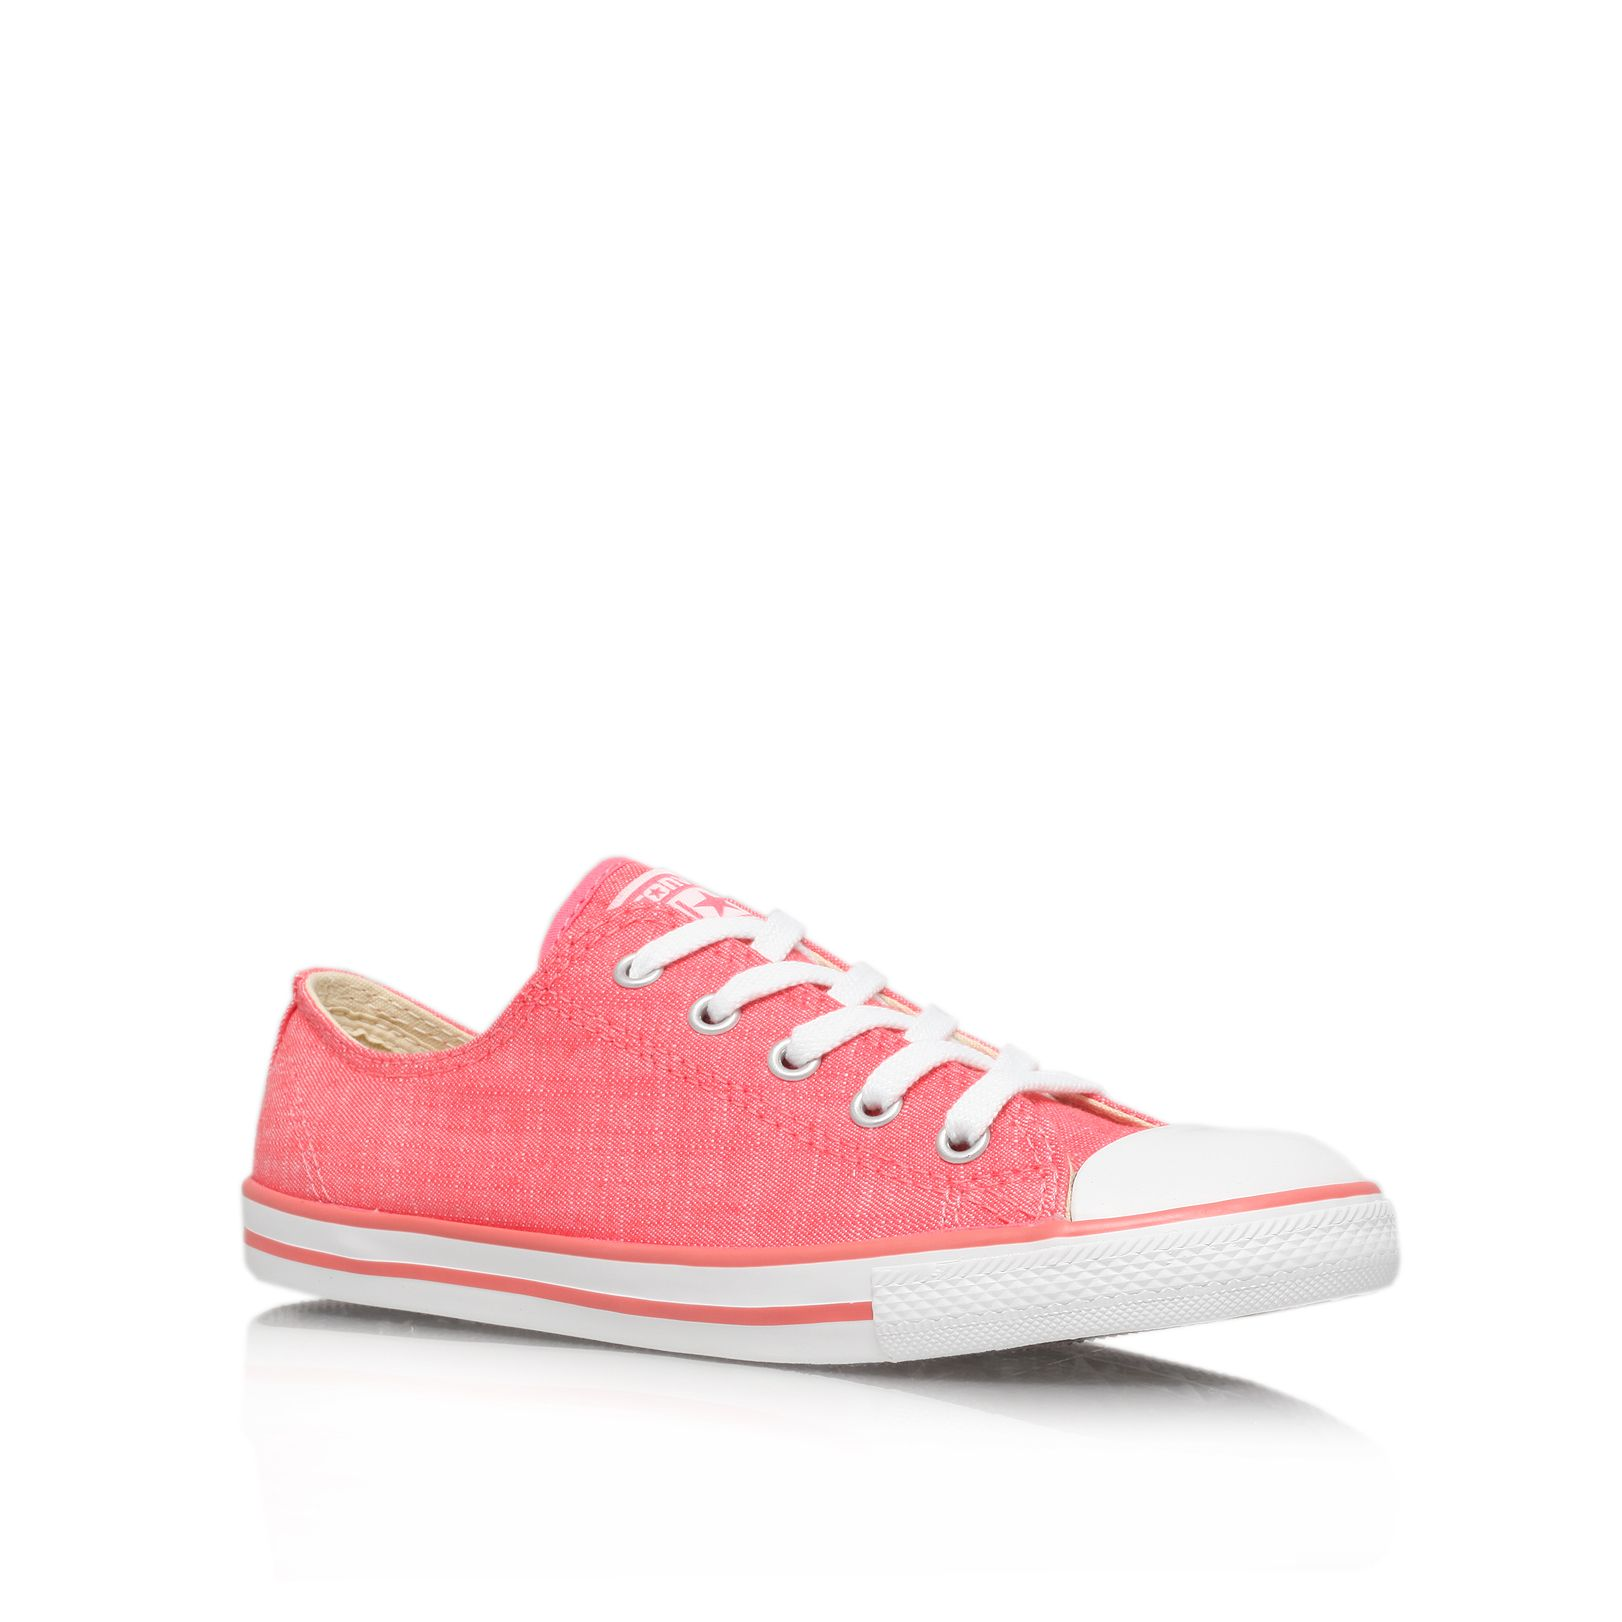 Dainty flat lace up casual trainers